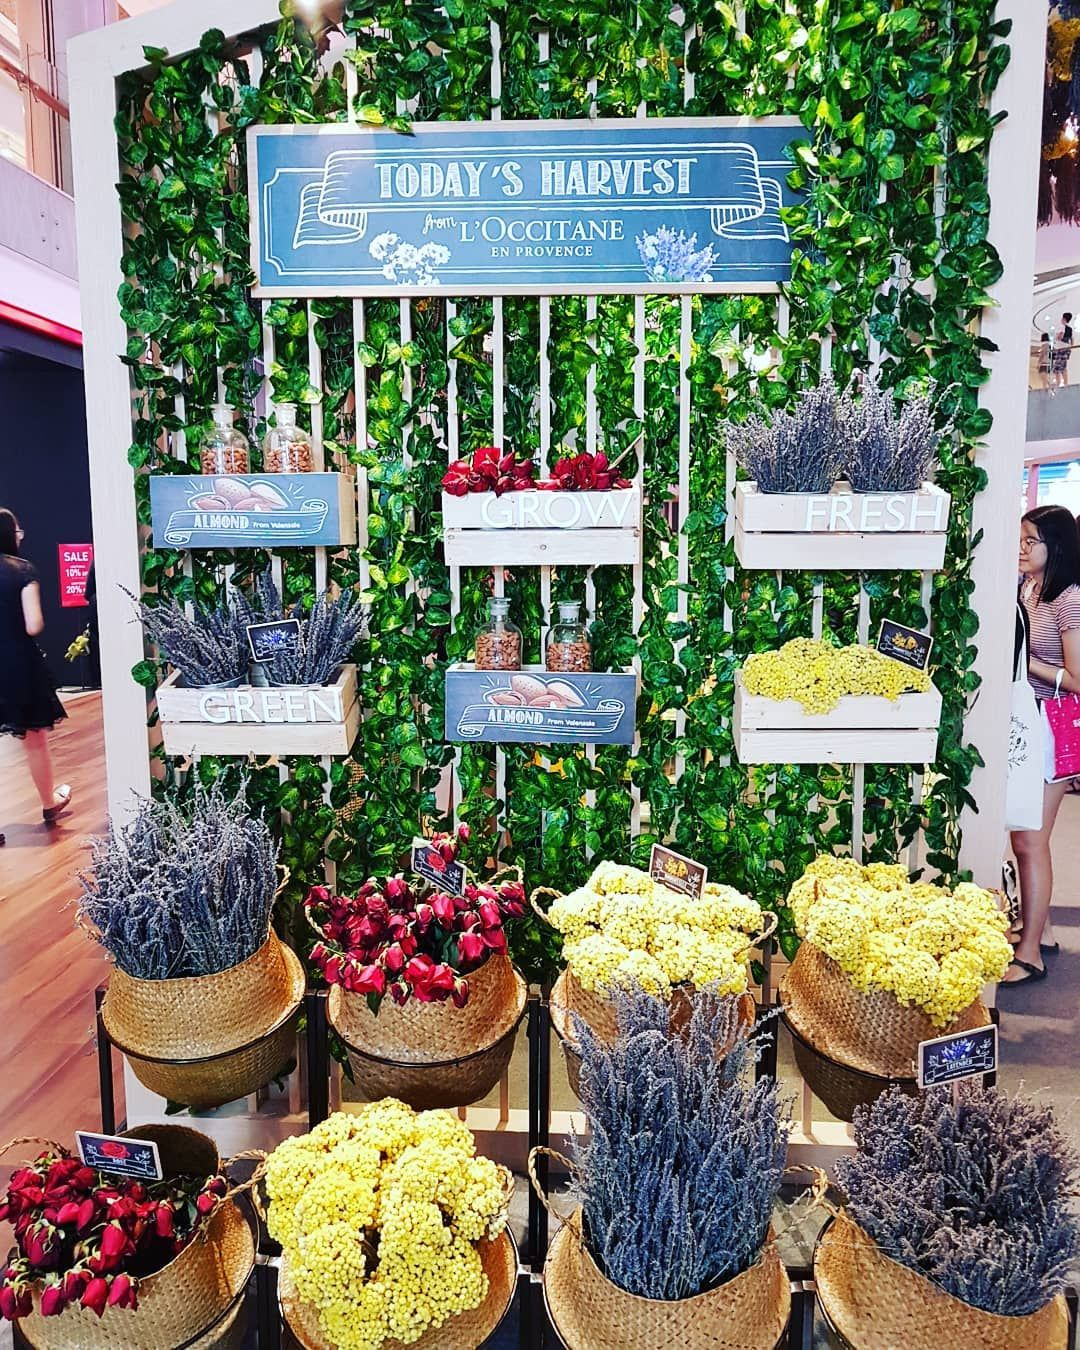 L'occitane beauty market